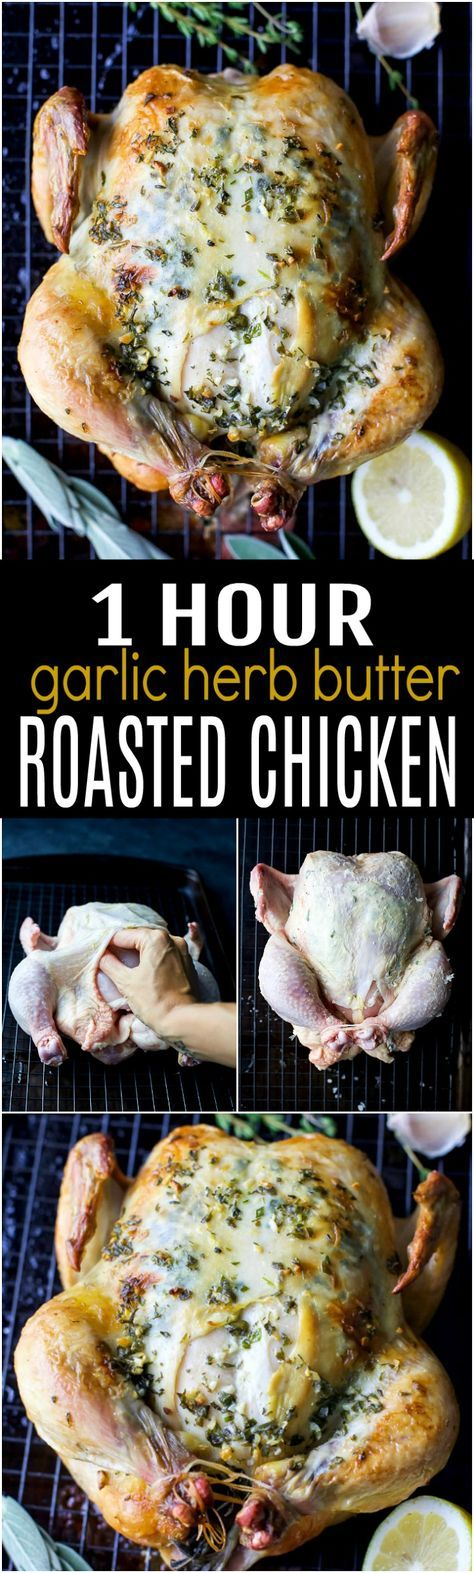 1 Hour Roasted Chicken slathered in a garlic herb butter that will make you swoon. This easy healthy roasted chicken recipe is guaranteed to be a new family favorite! #ad @JustBARE